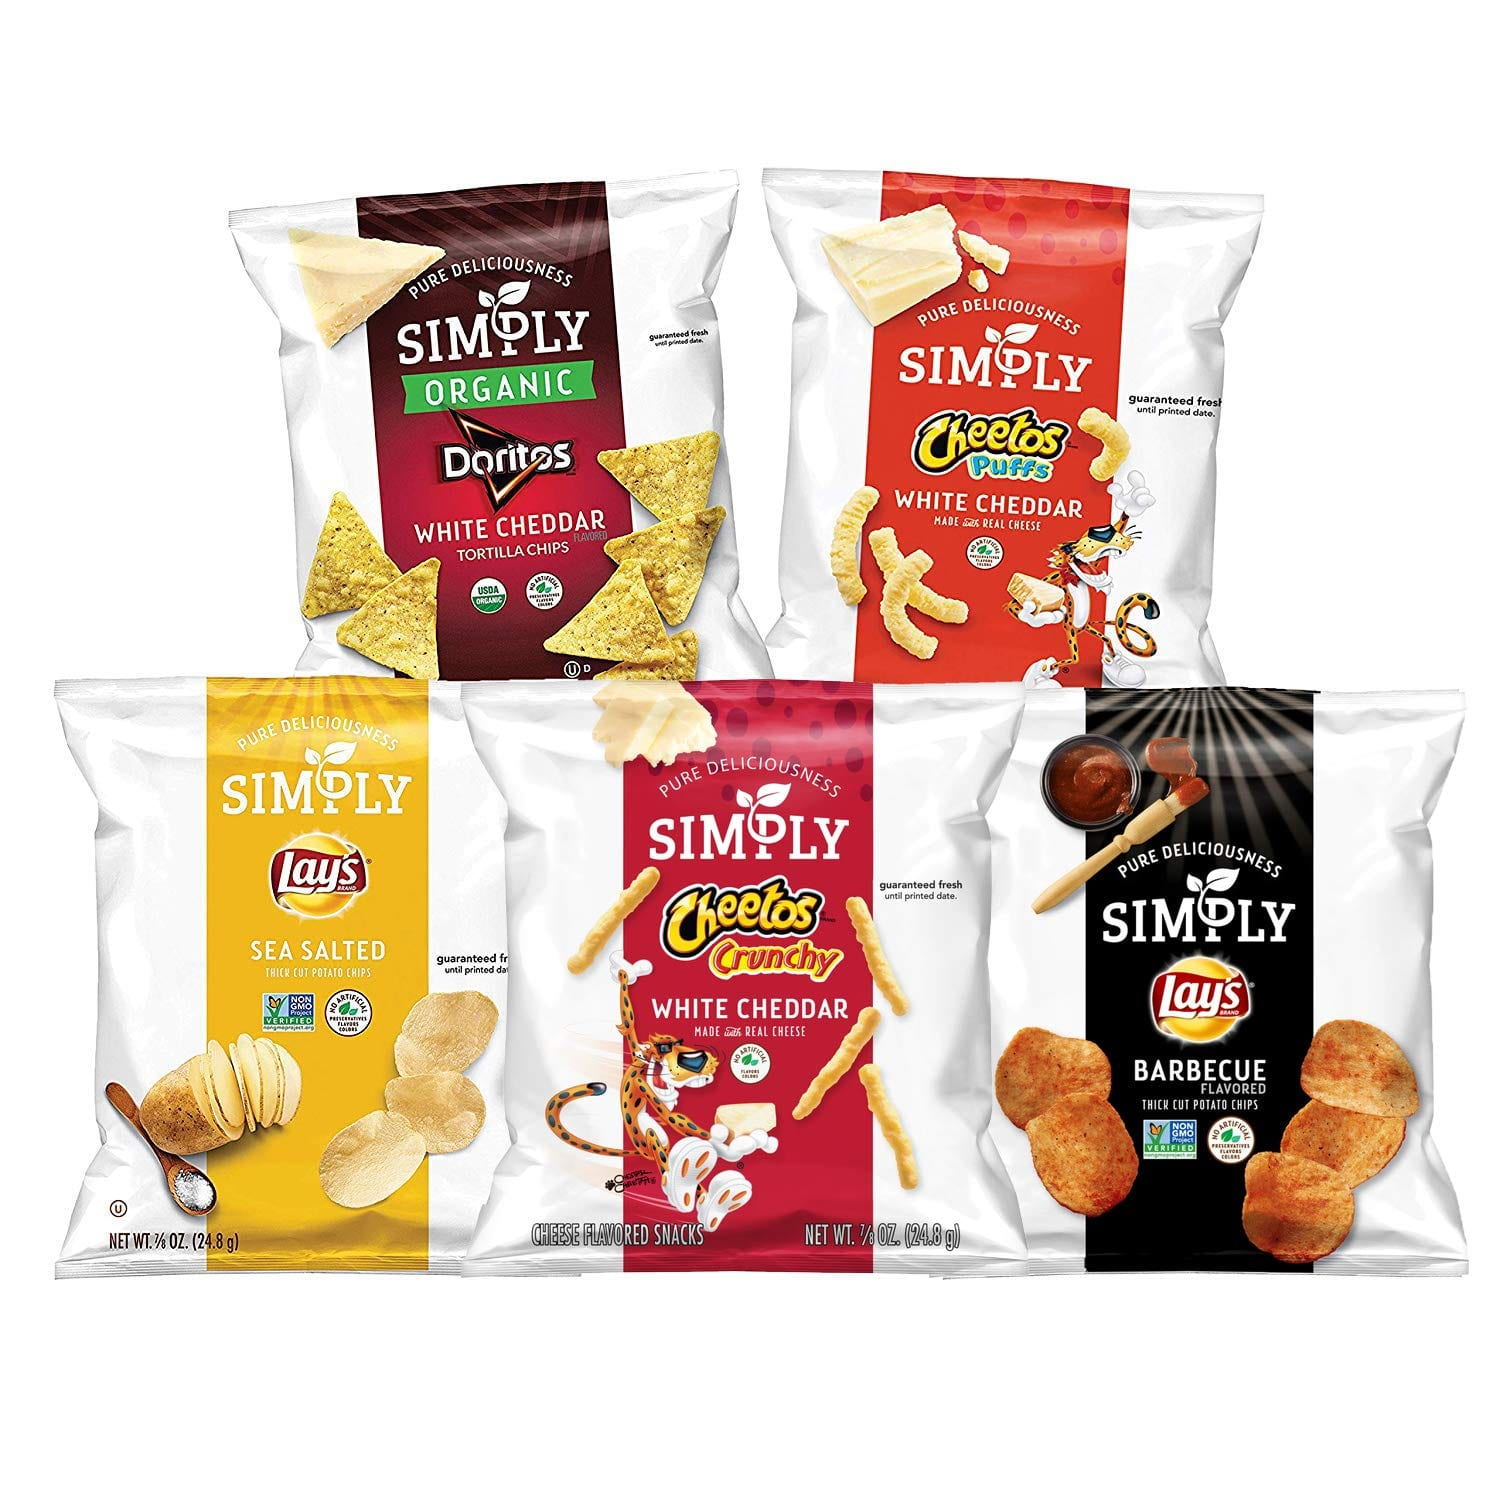 36-Count 0.875oz Simply Brand Organic Snack Variety Pack $11.18 5% or $9.58 15% AC w/s&s